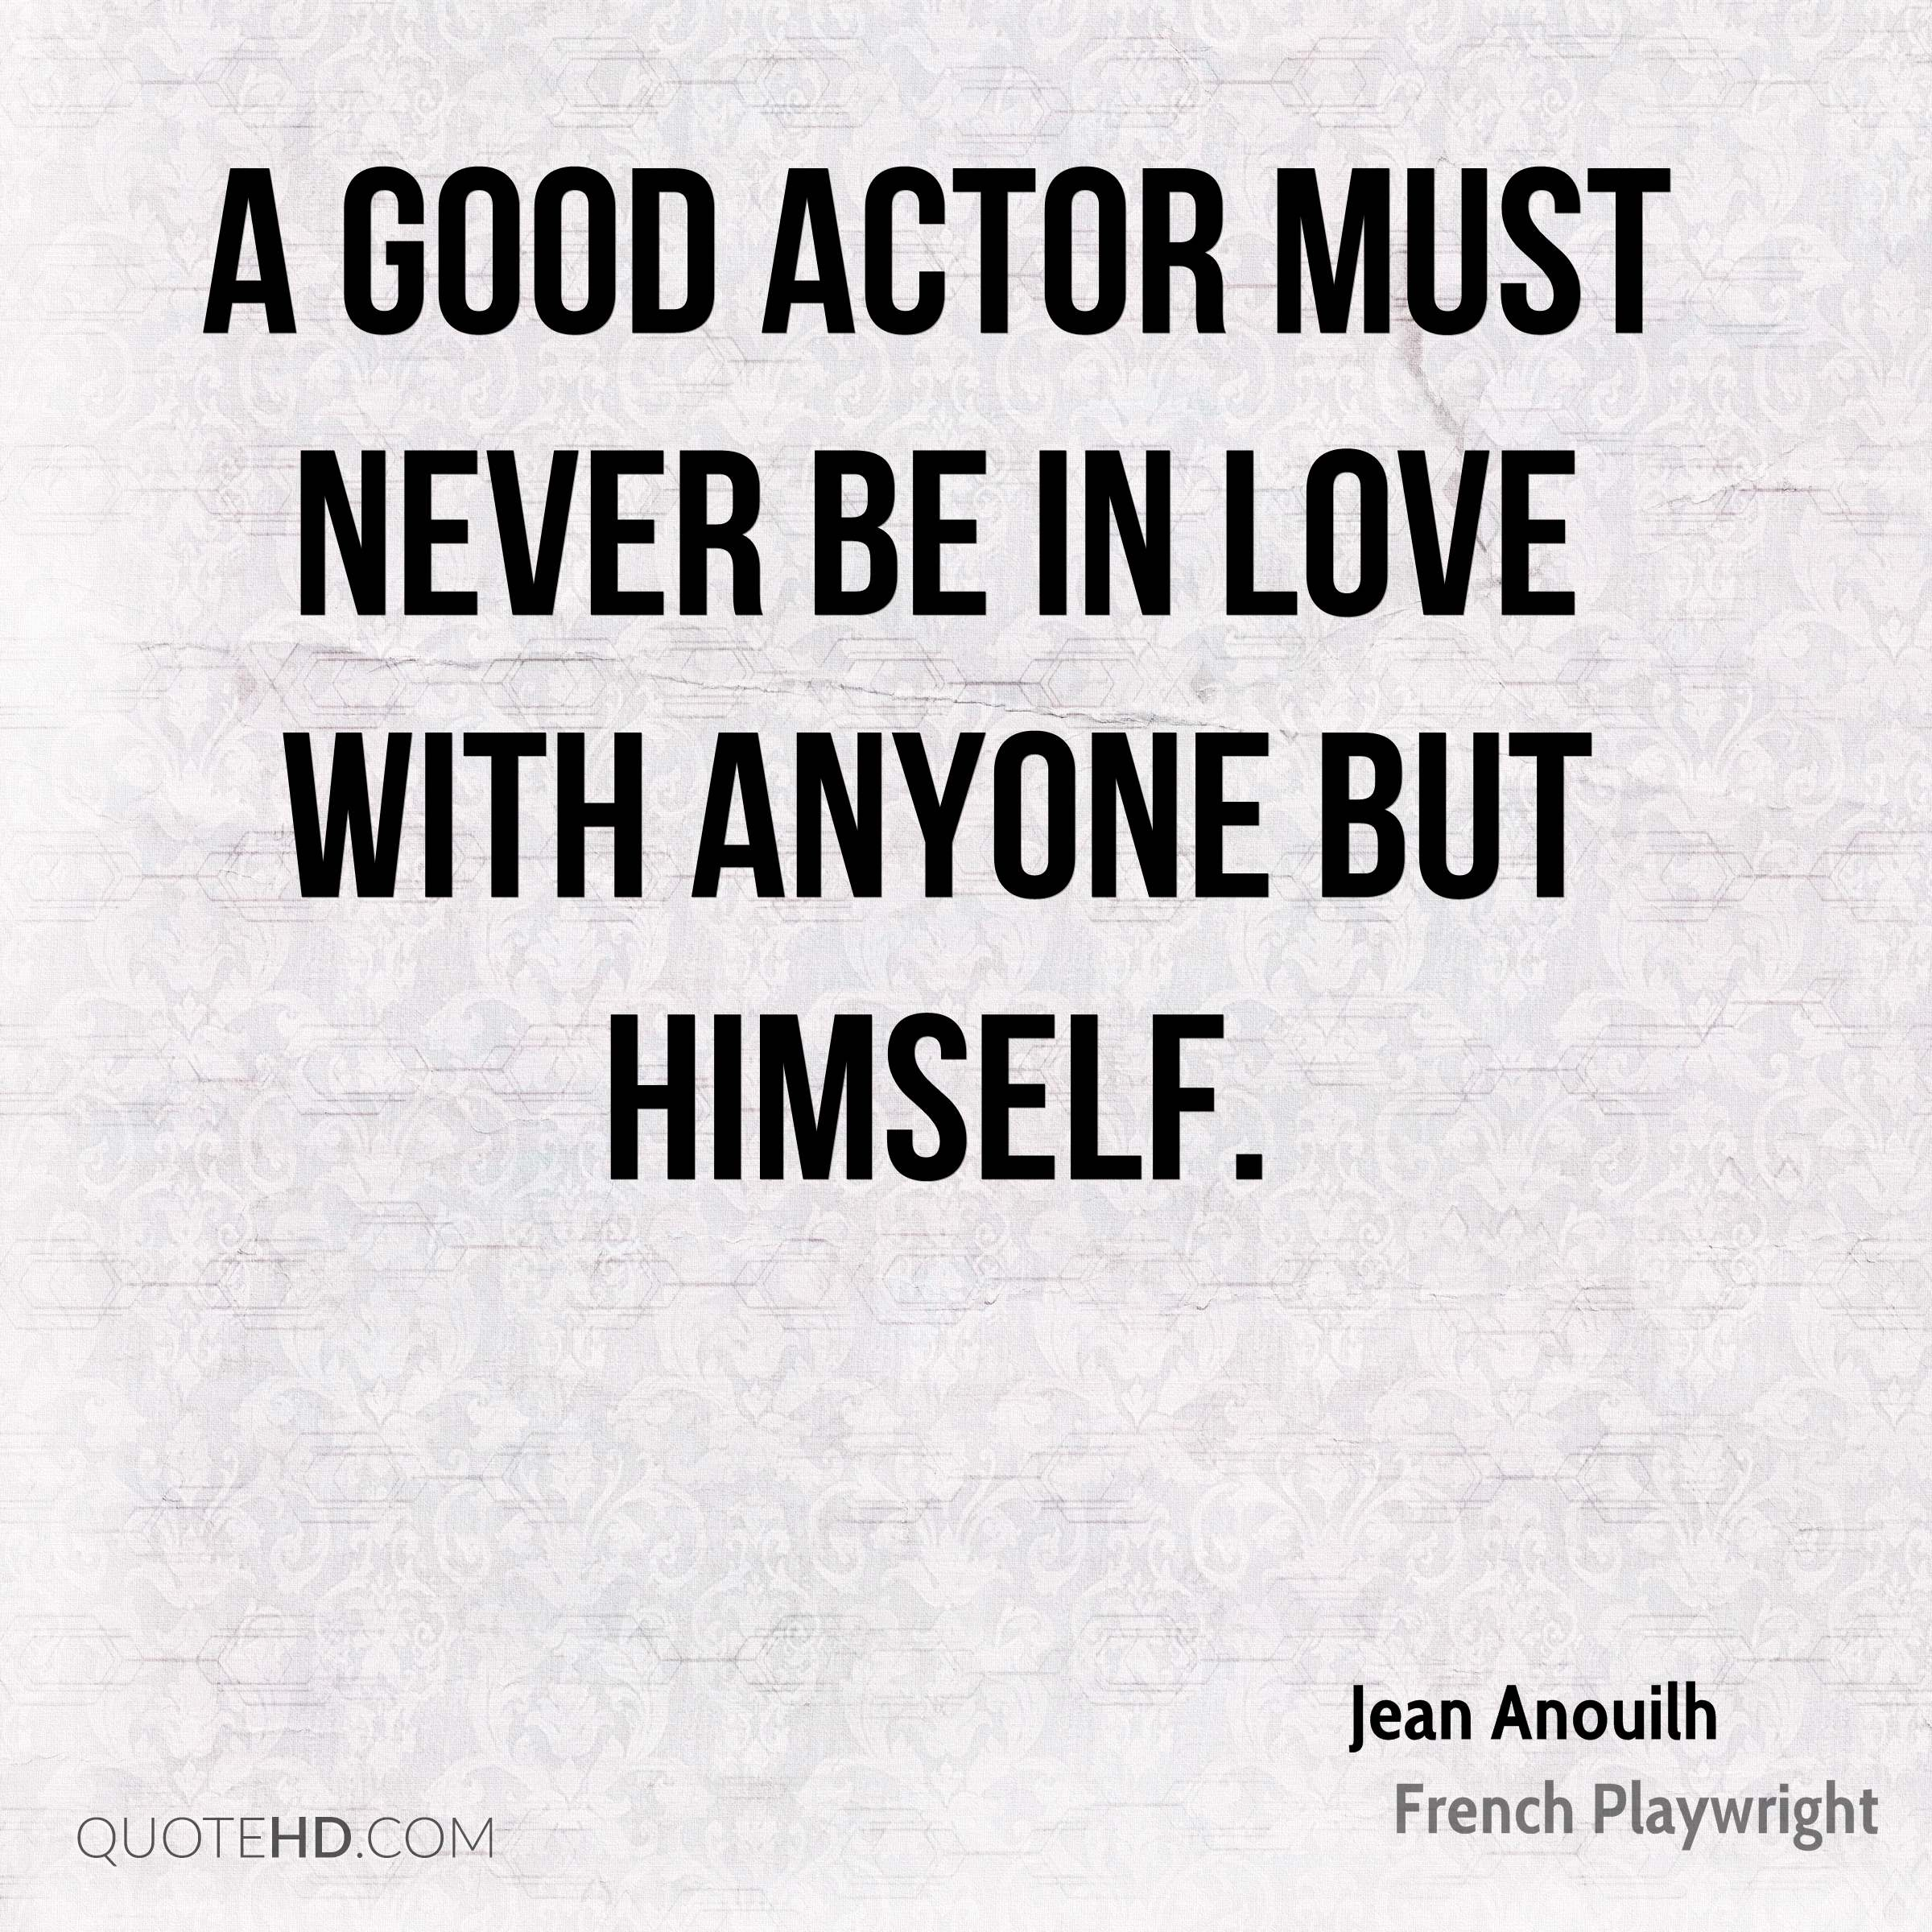 A good actor must never be in love with anyone but himself.